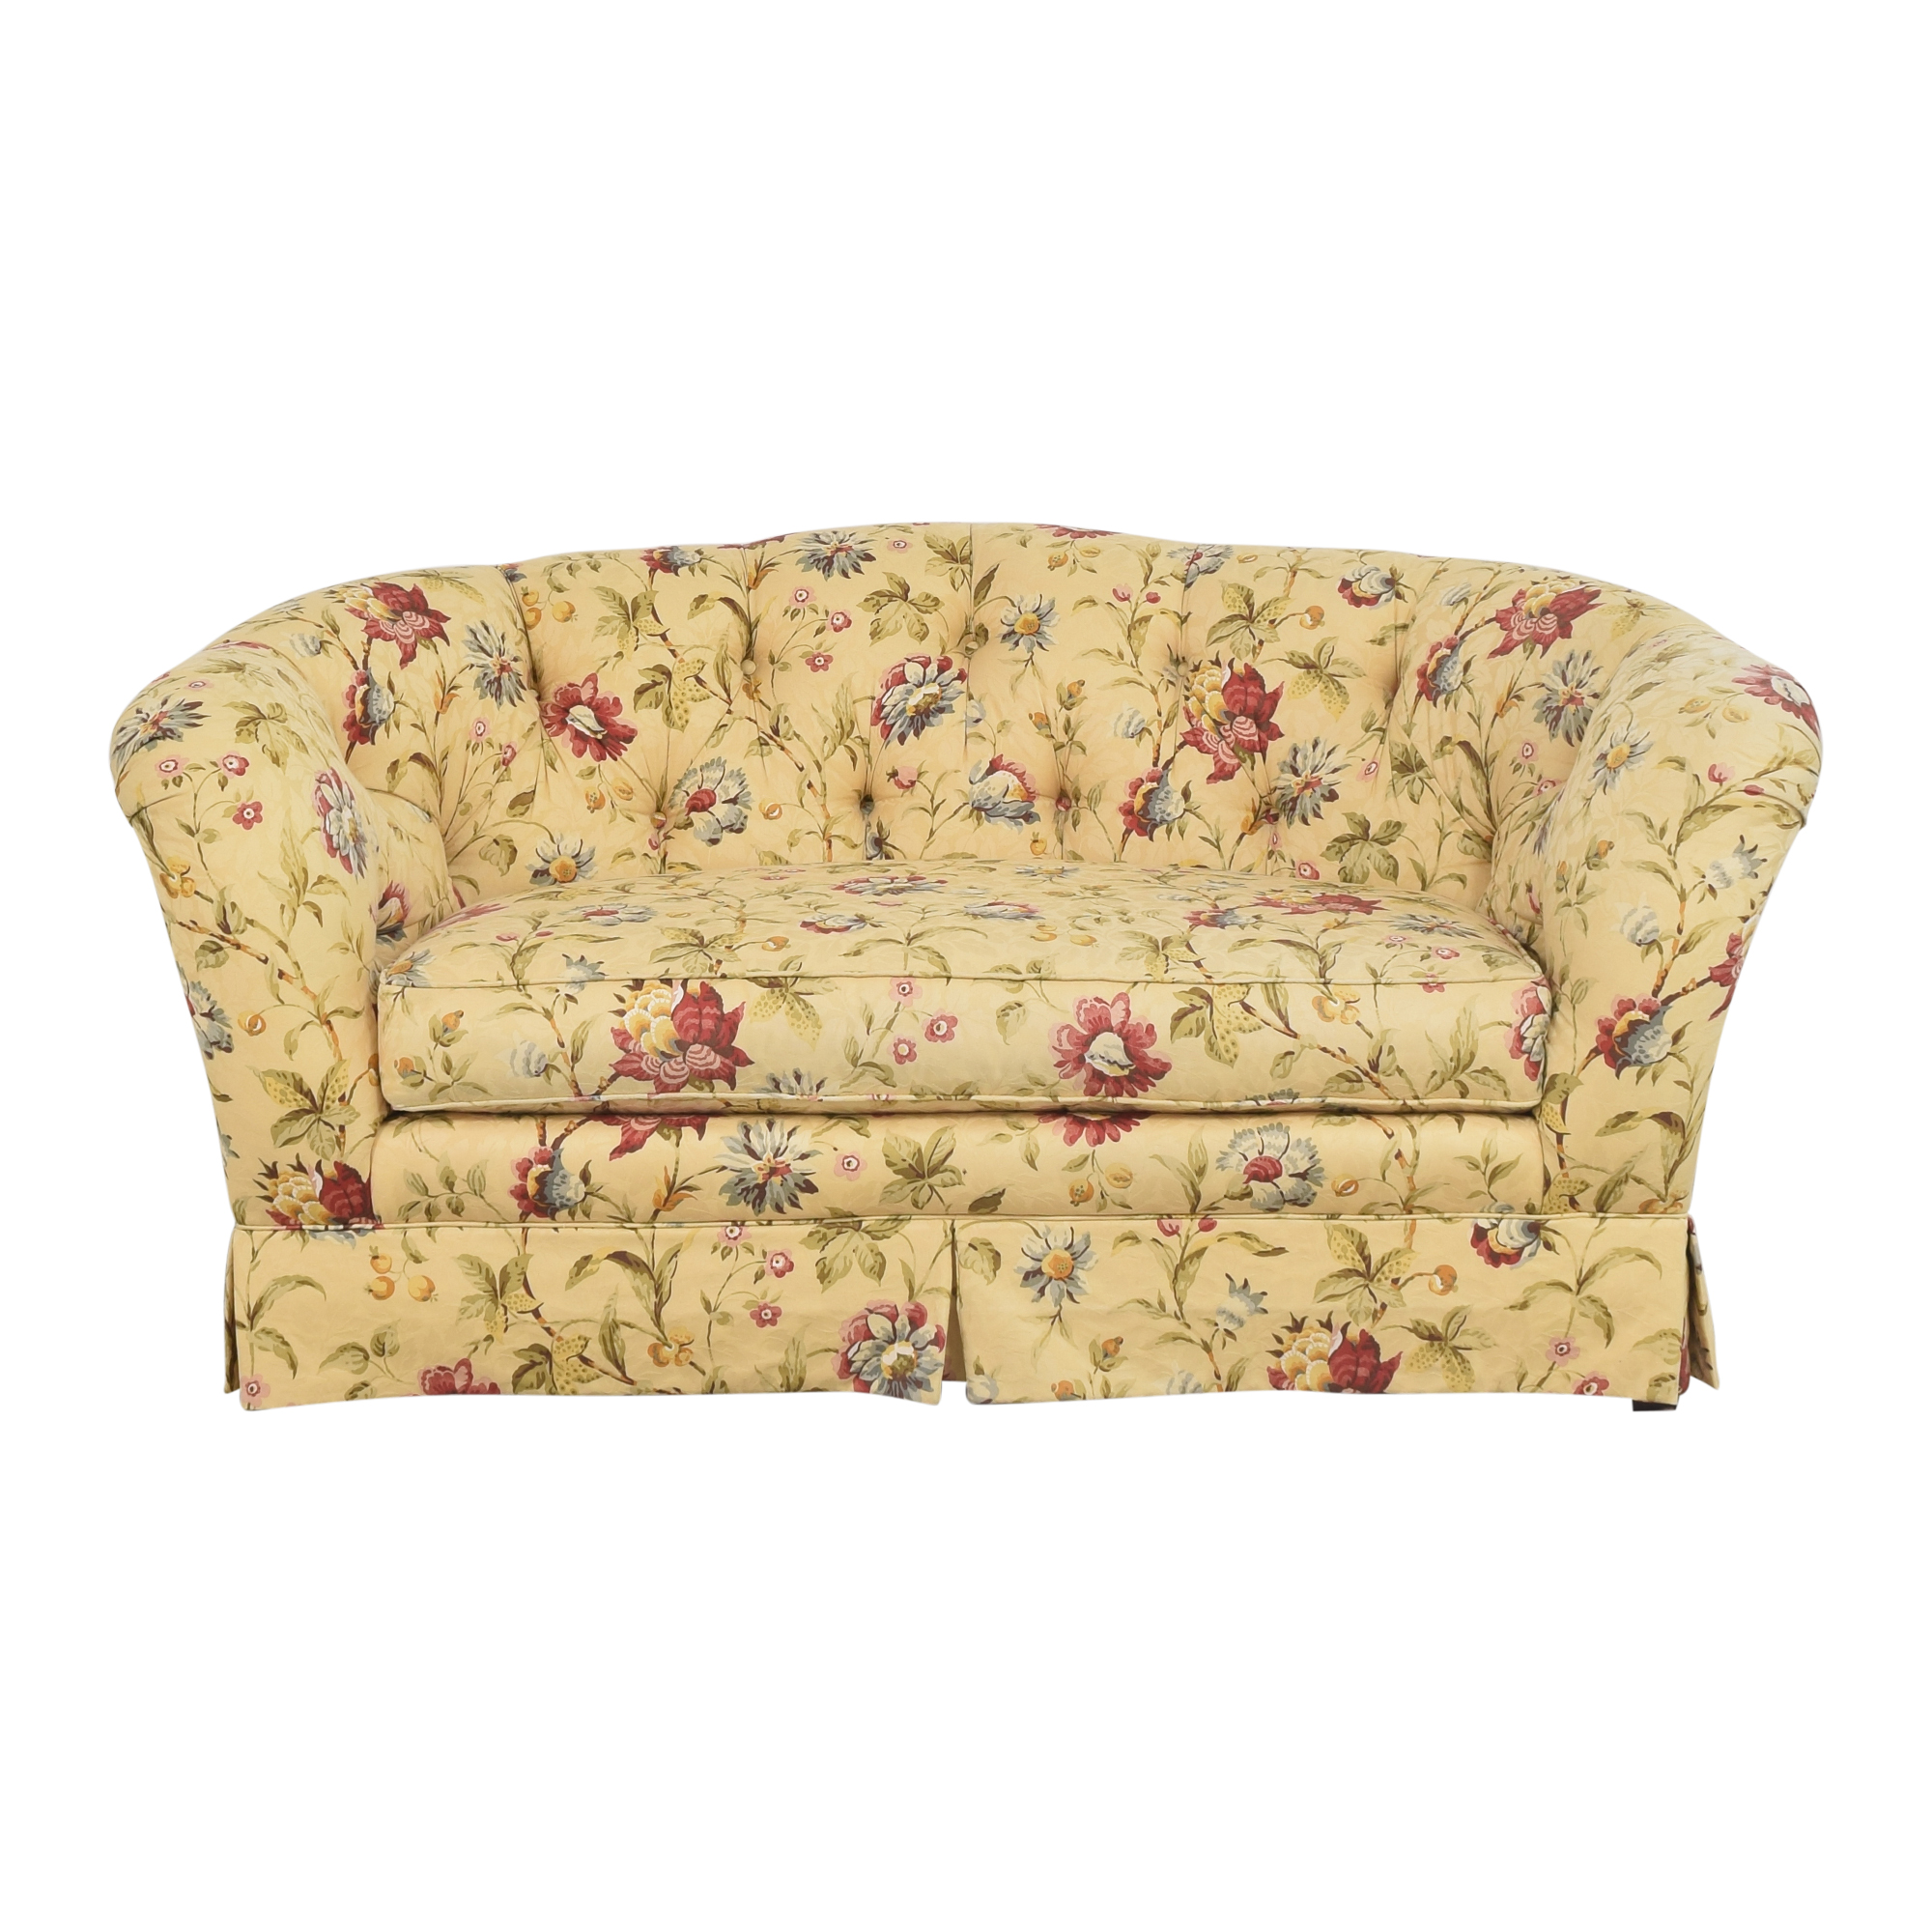 Ethan Allen Ethan Allen Tufted Bench Cushion Sofa